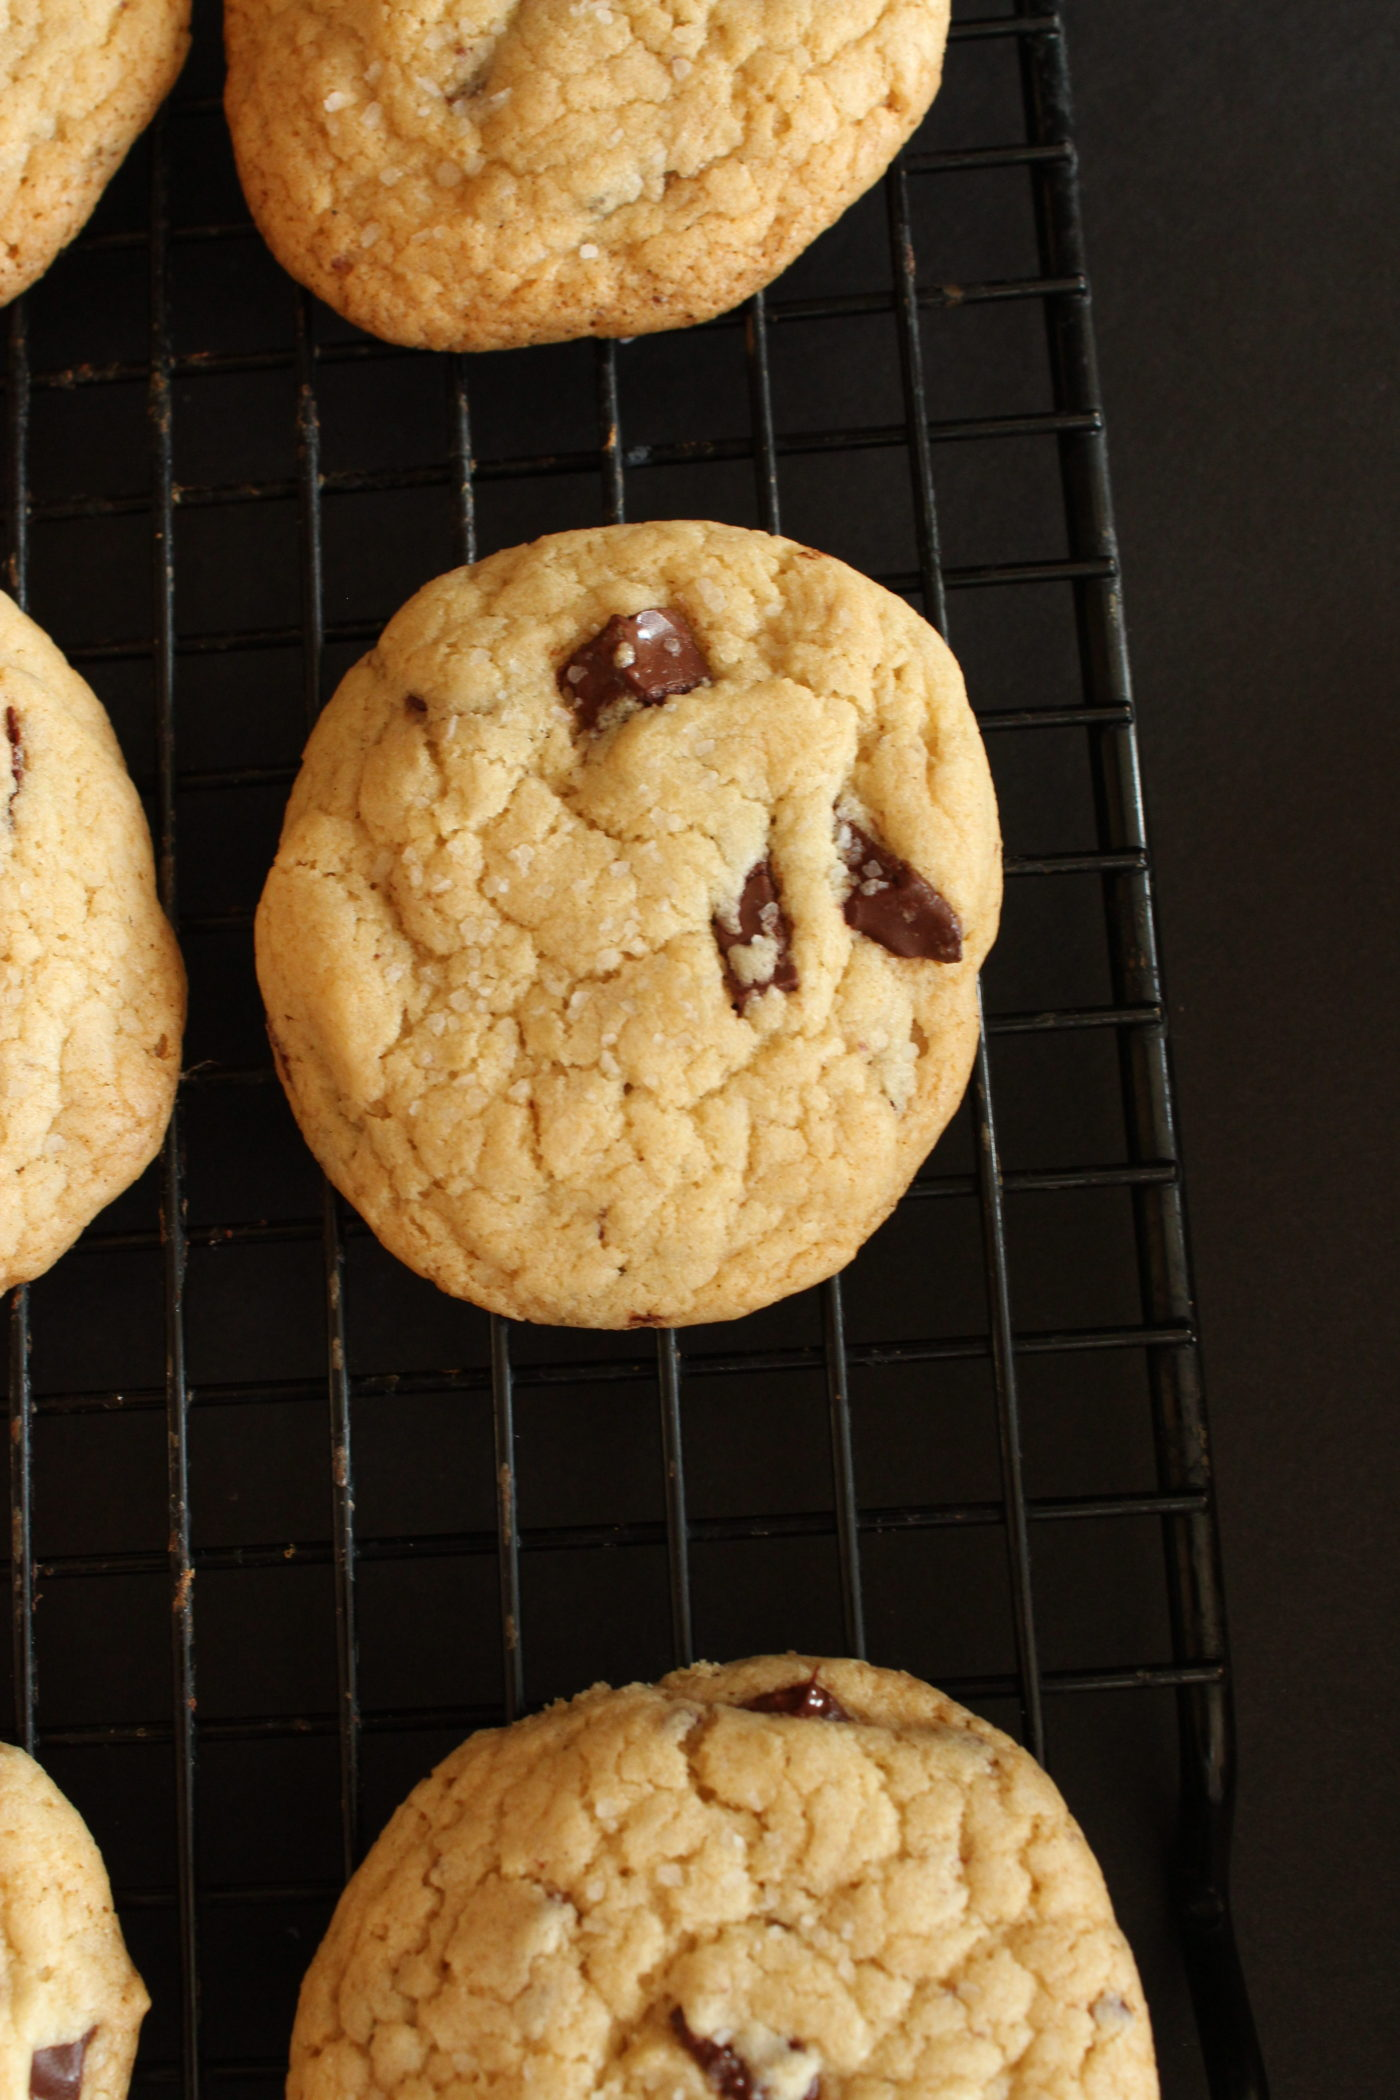 Chocolate chip cookies on cooking rack.